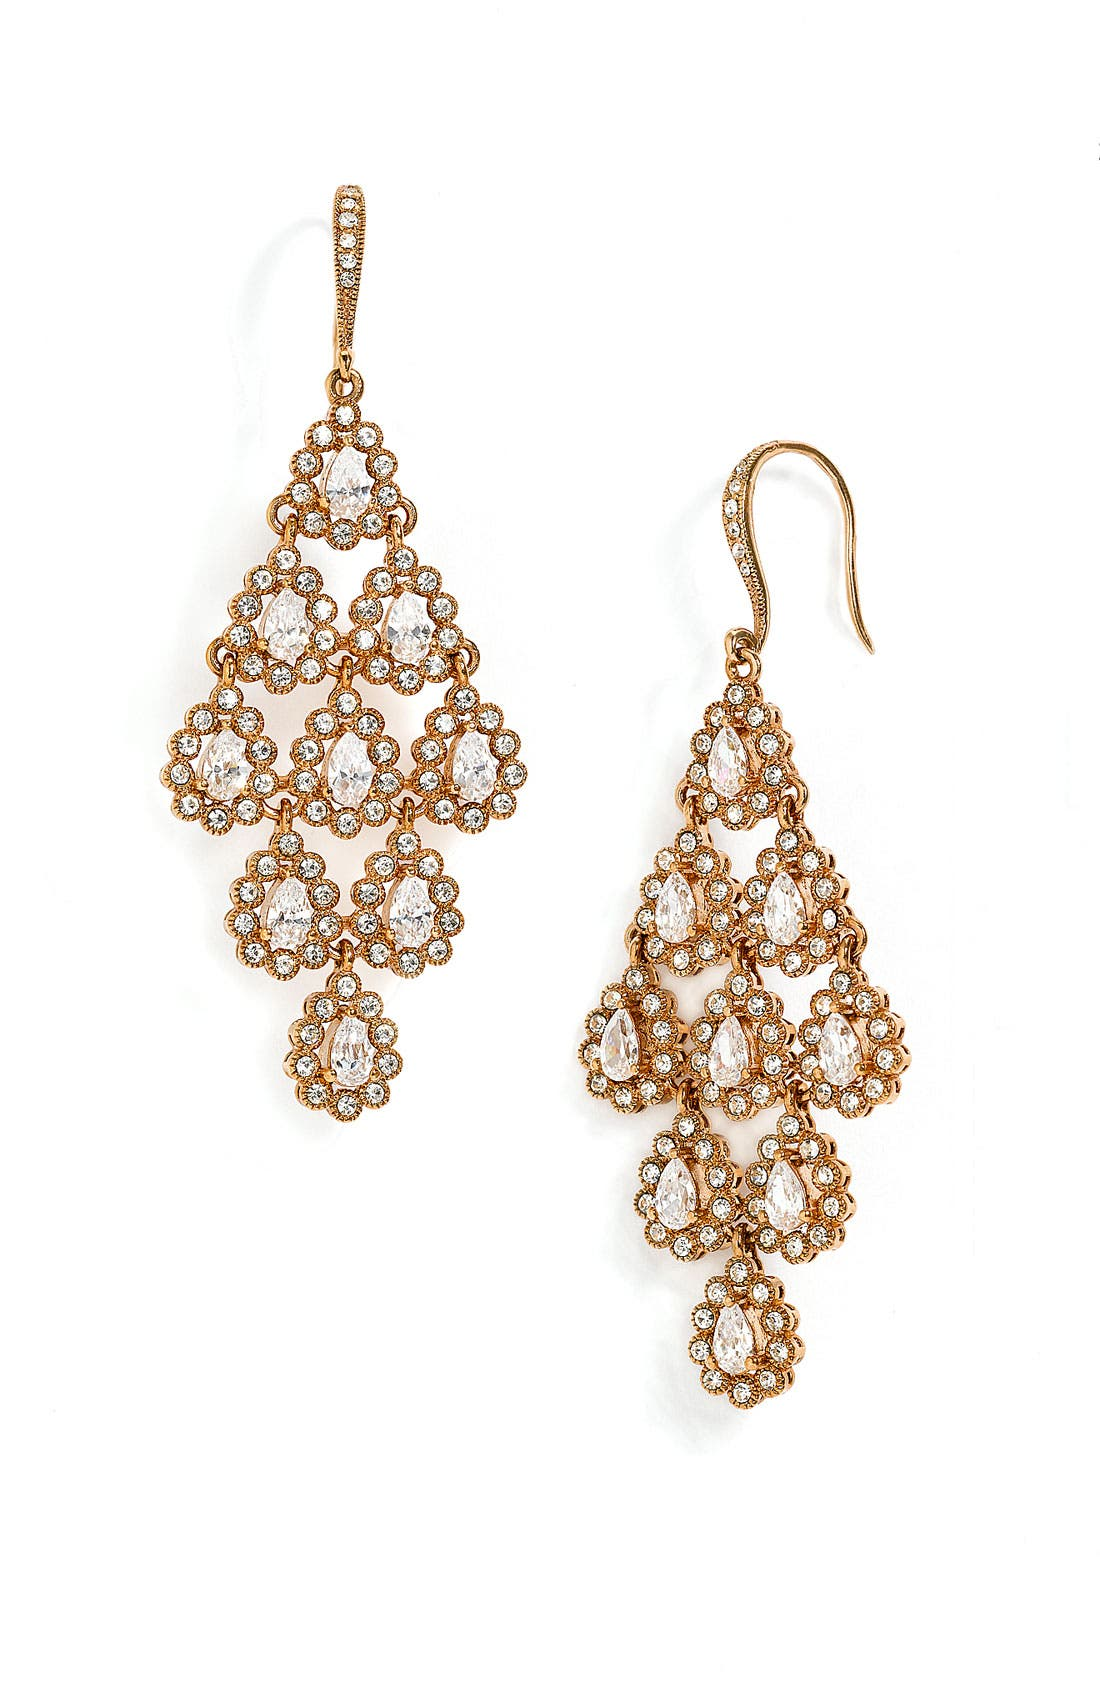 Tiered Chandelier Earrings,                             Main thumbnail 1, color,                             Rose Gold